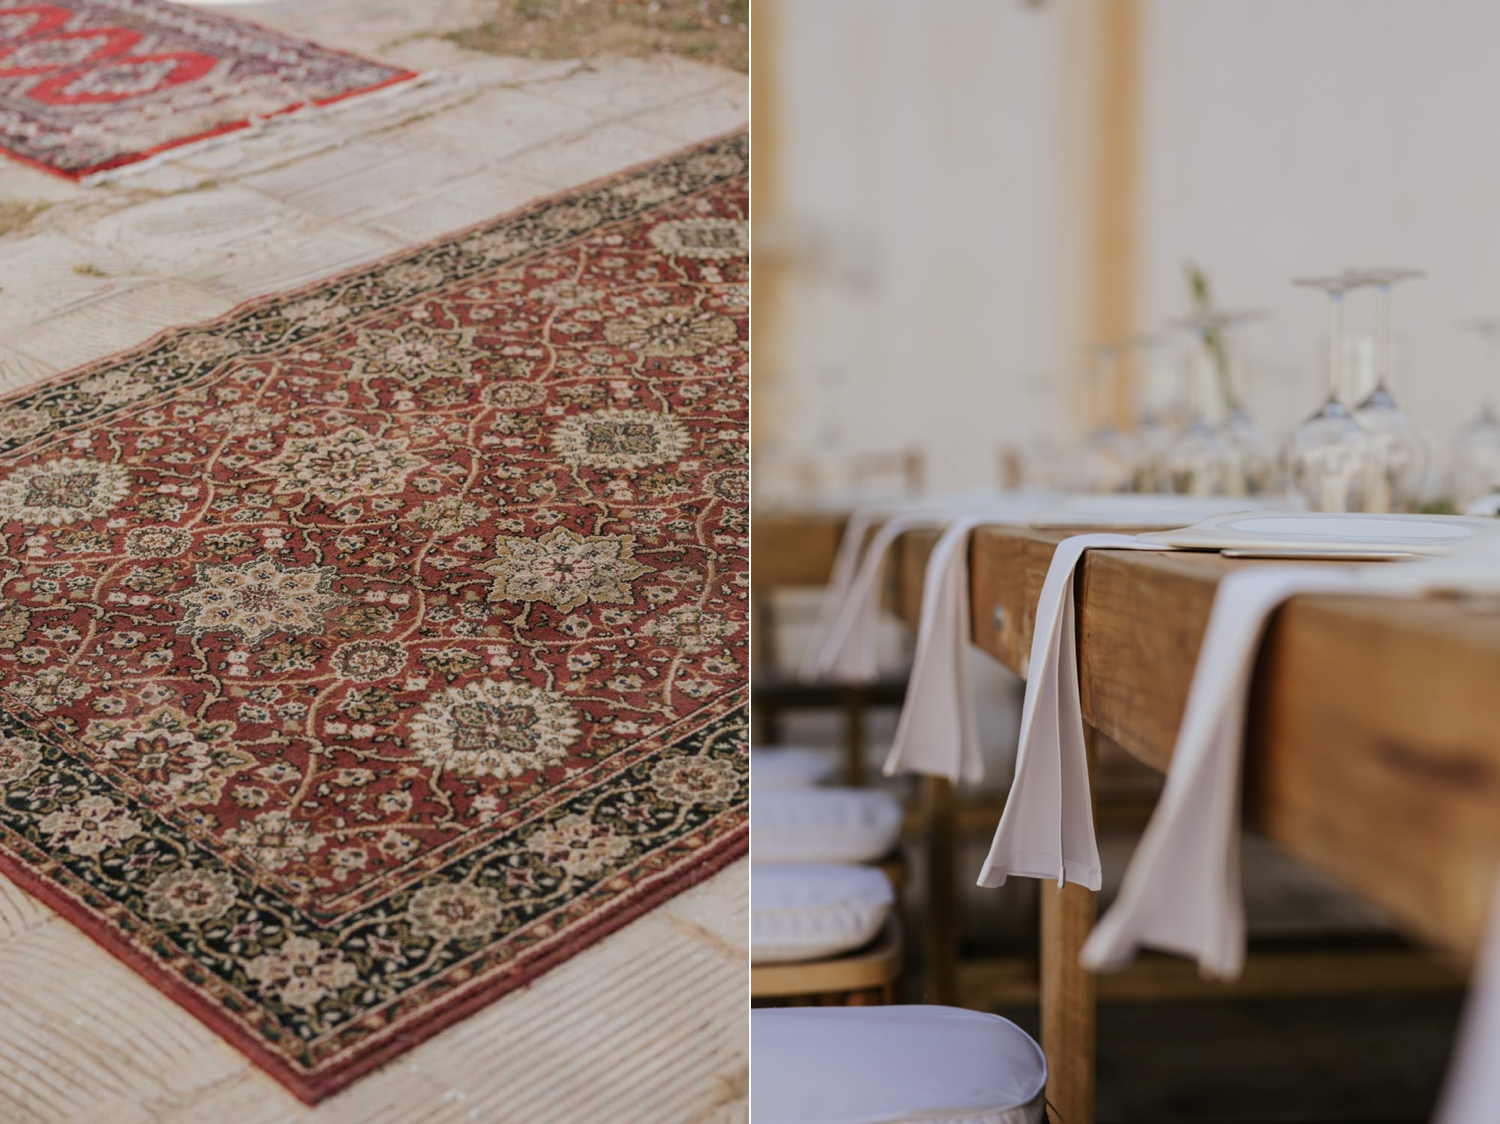 Old Persian carpets used in wedding reception hall